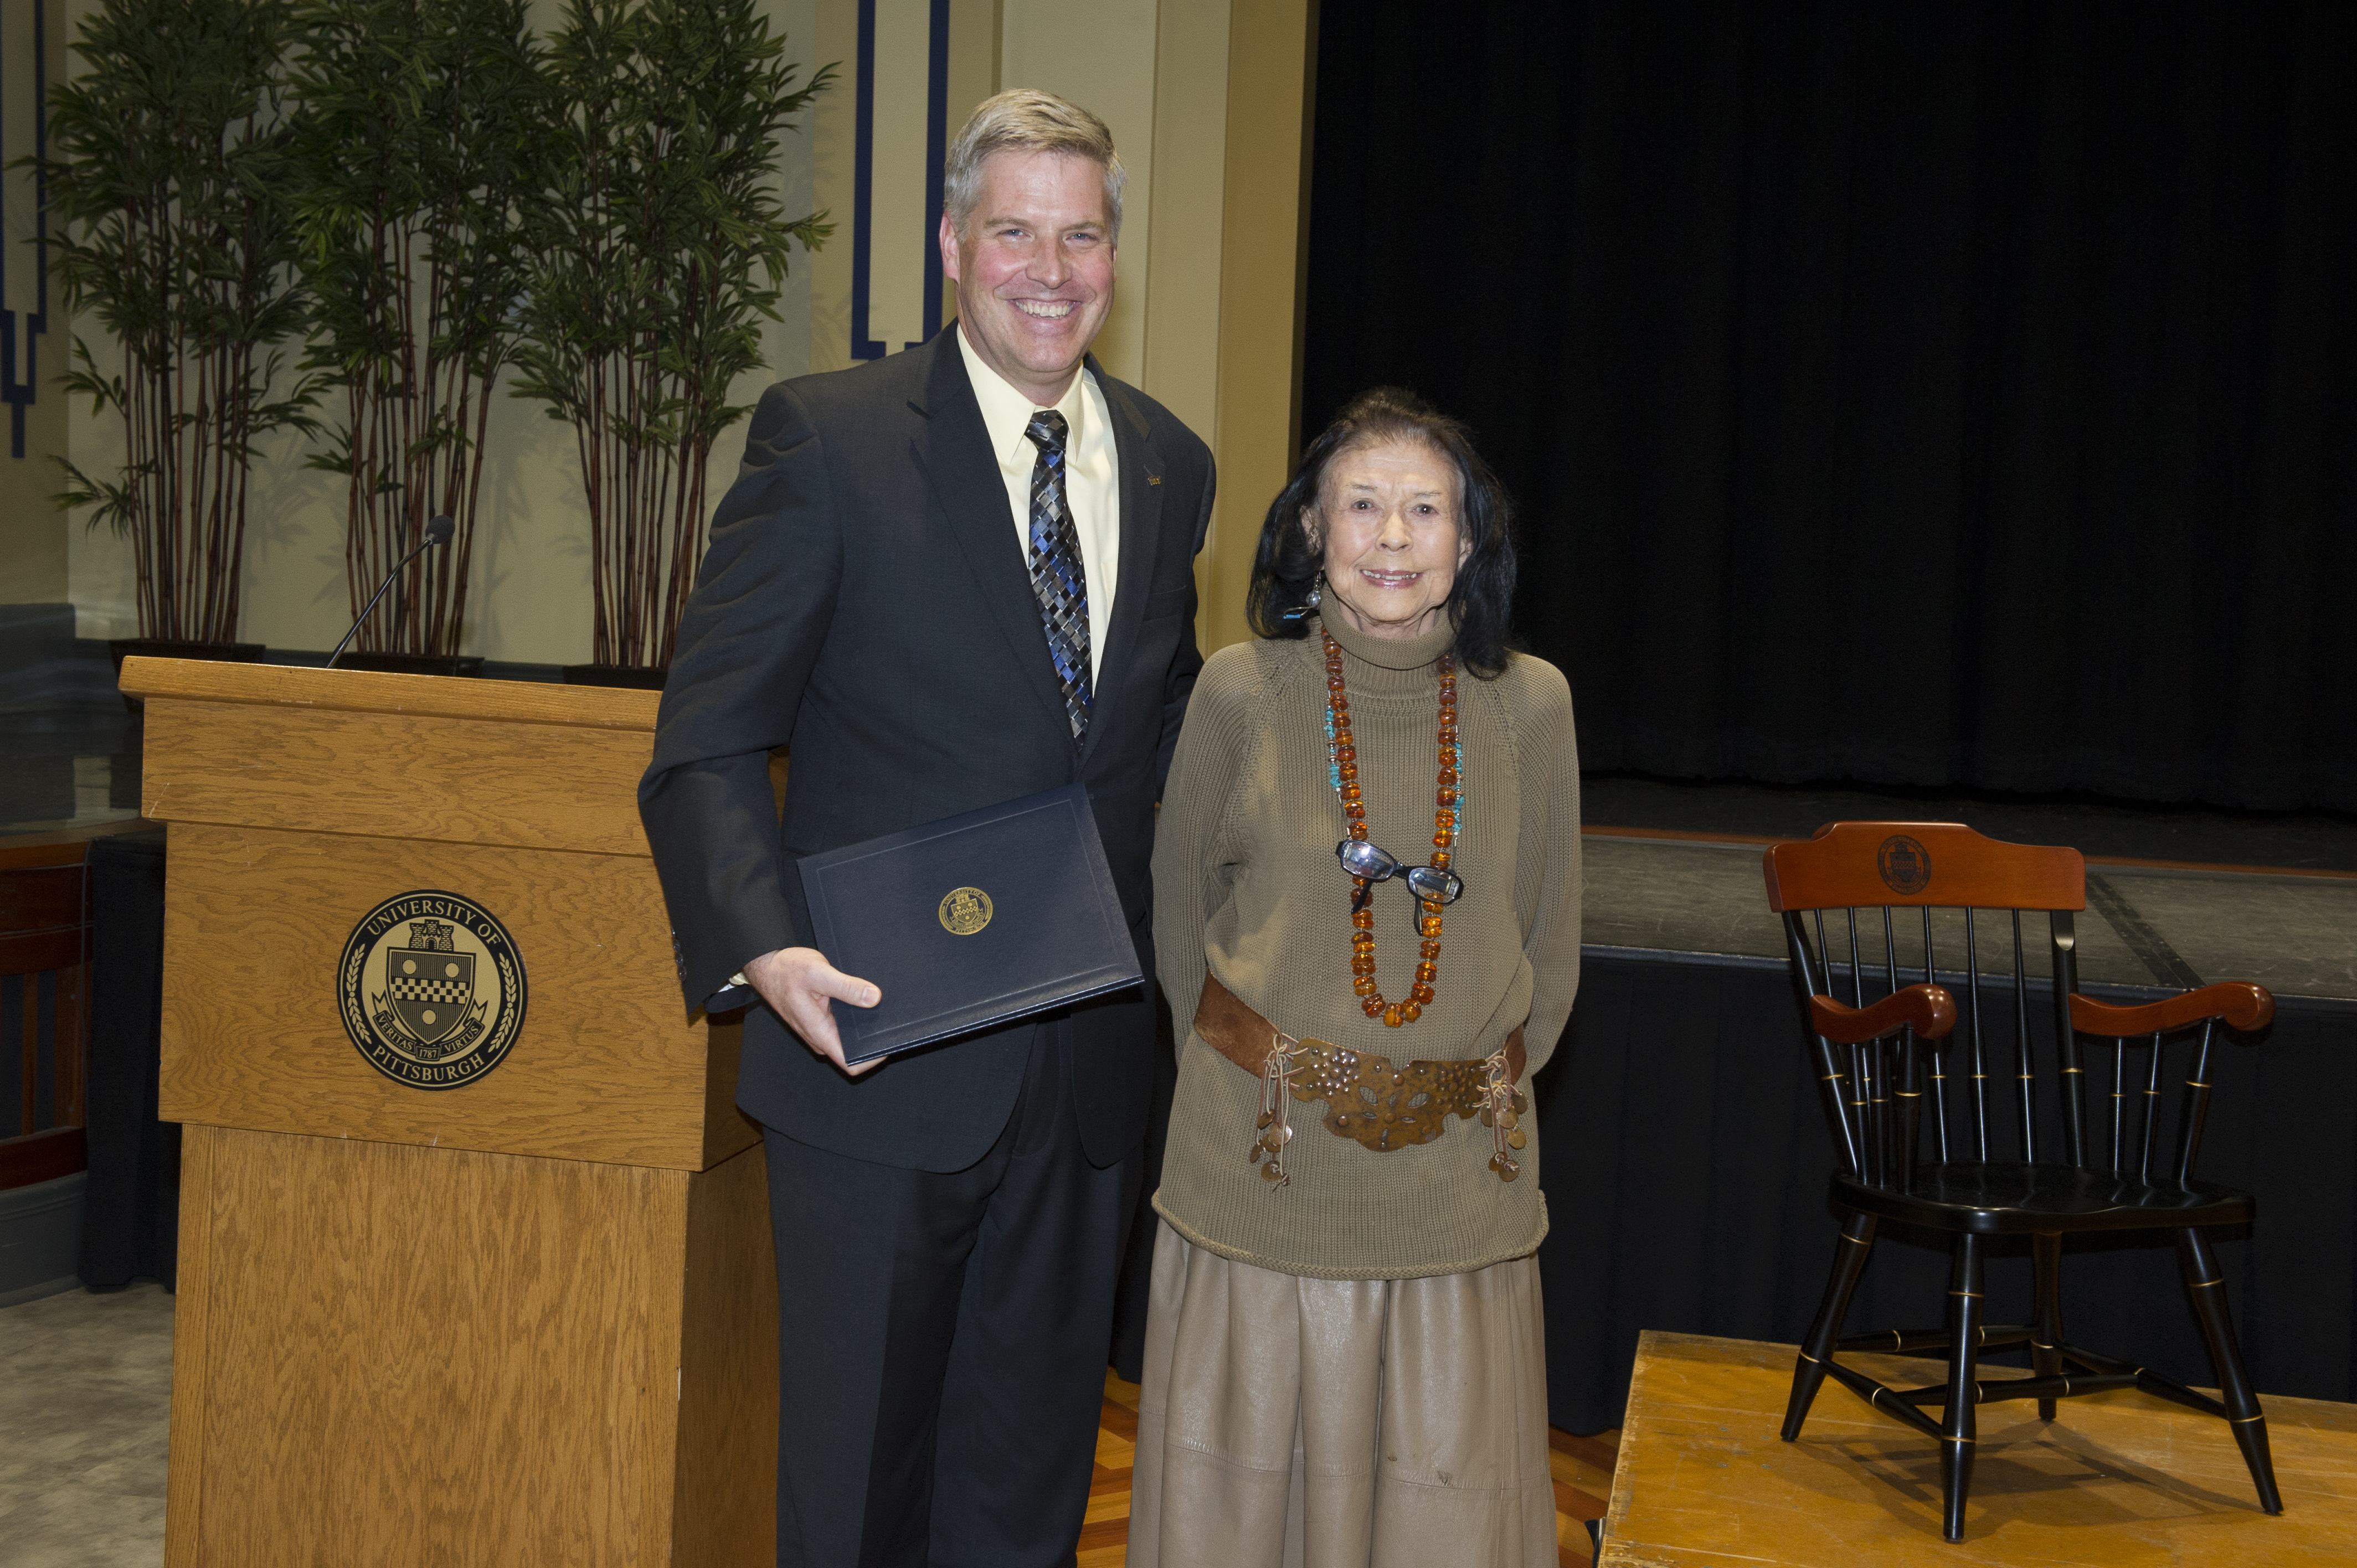 Chancellor Gallagher with Maxine Bruhns